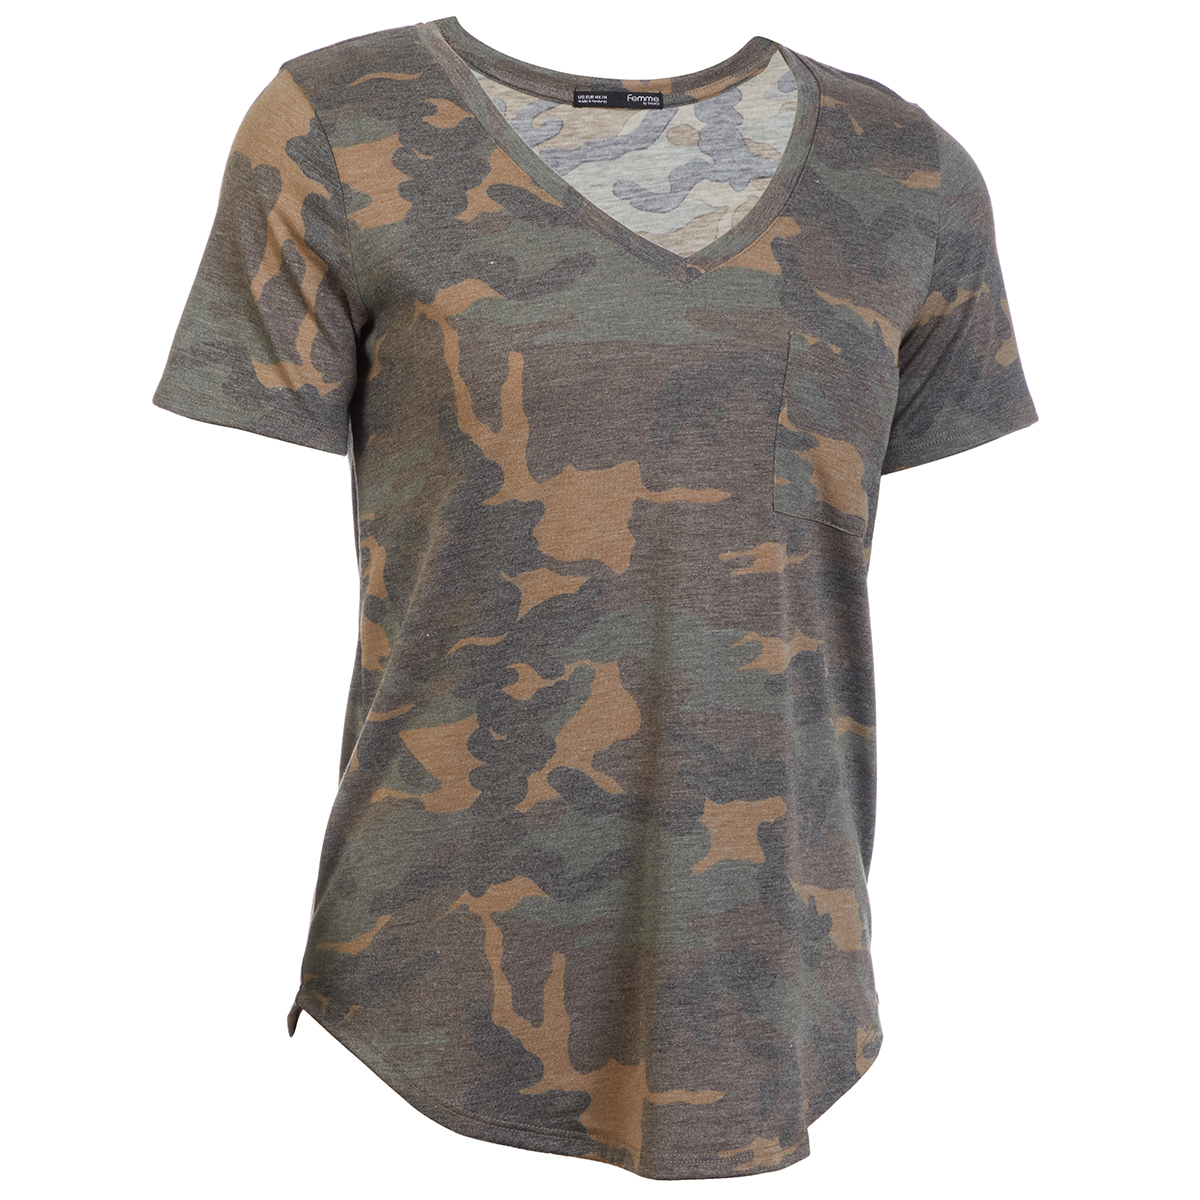 Femme Women's Camo Boyfriend Short-Sleeve Tee - Various Patterns, S